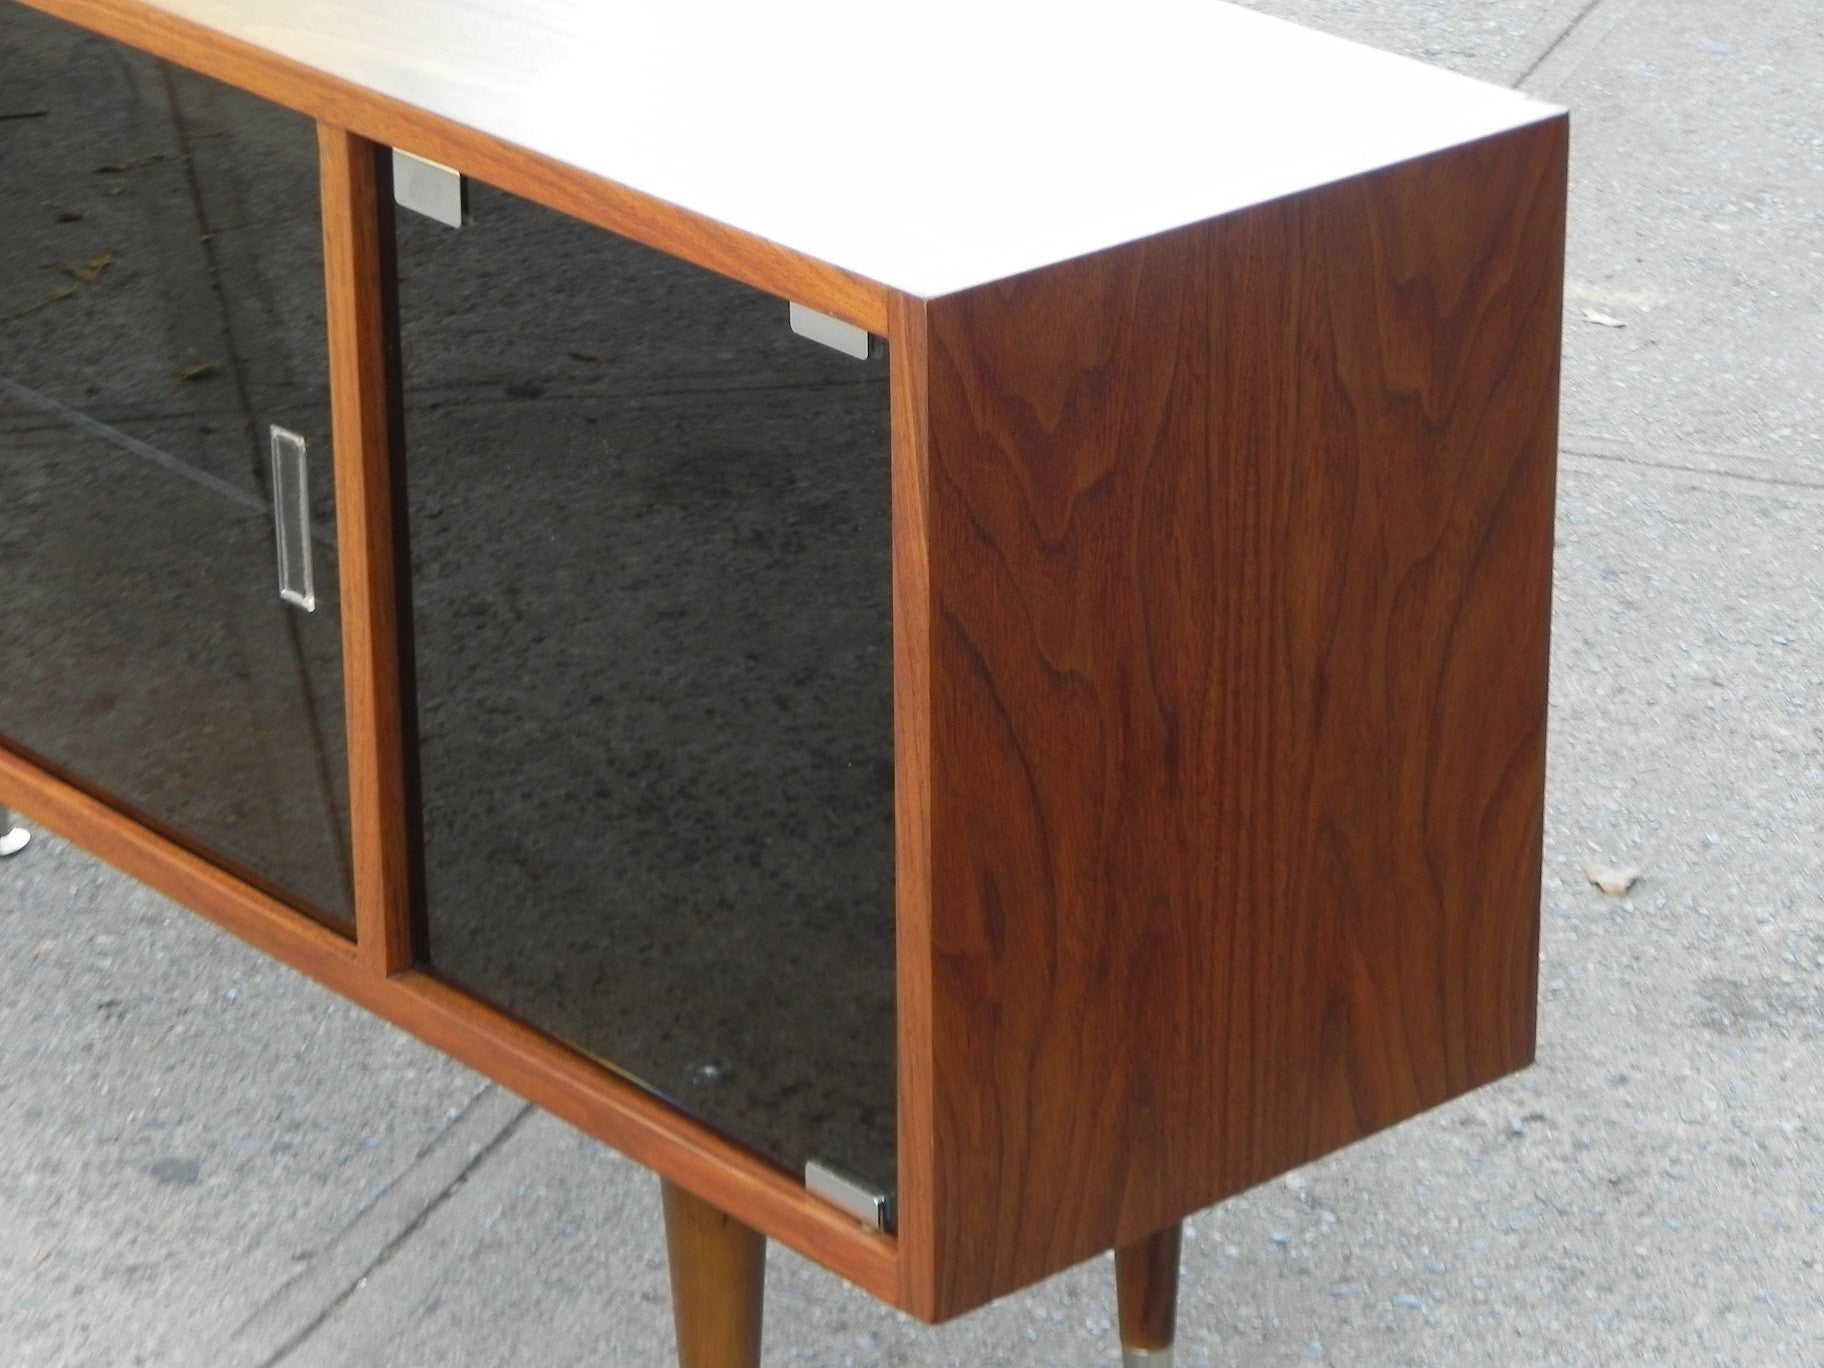 ... Custom Wood U0026 Glass Media Cabinet, Made To Order (Something Like This)  ...